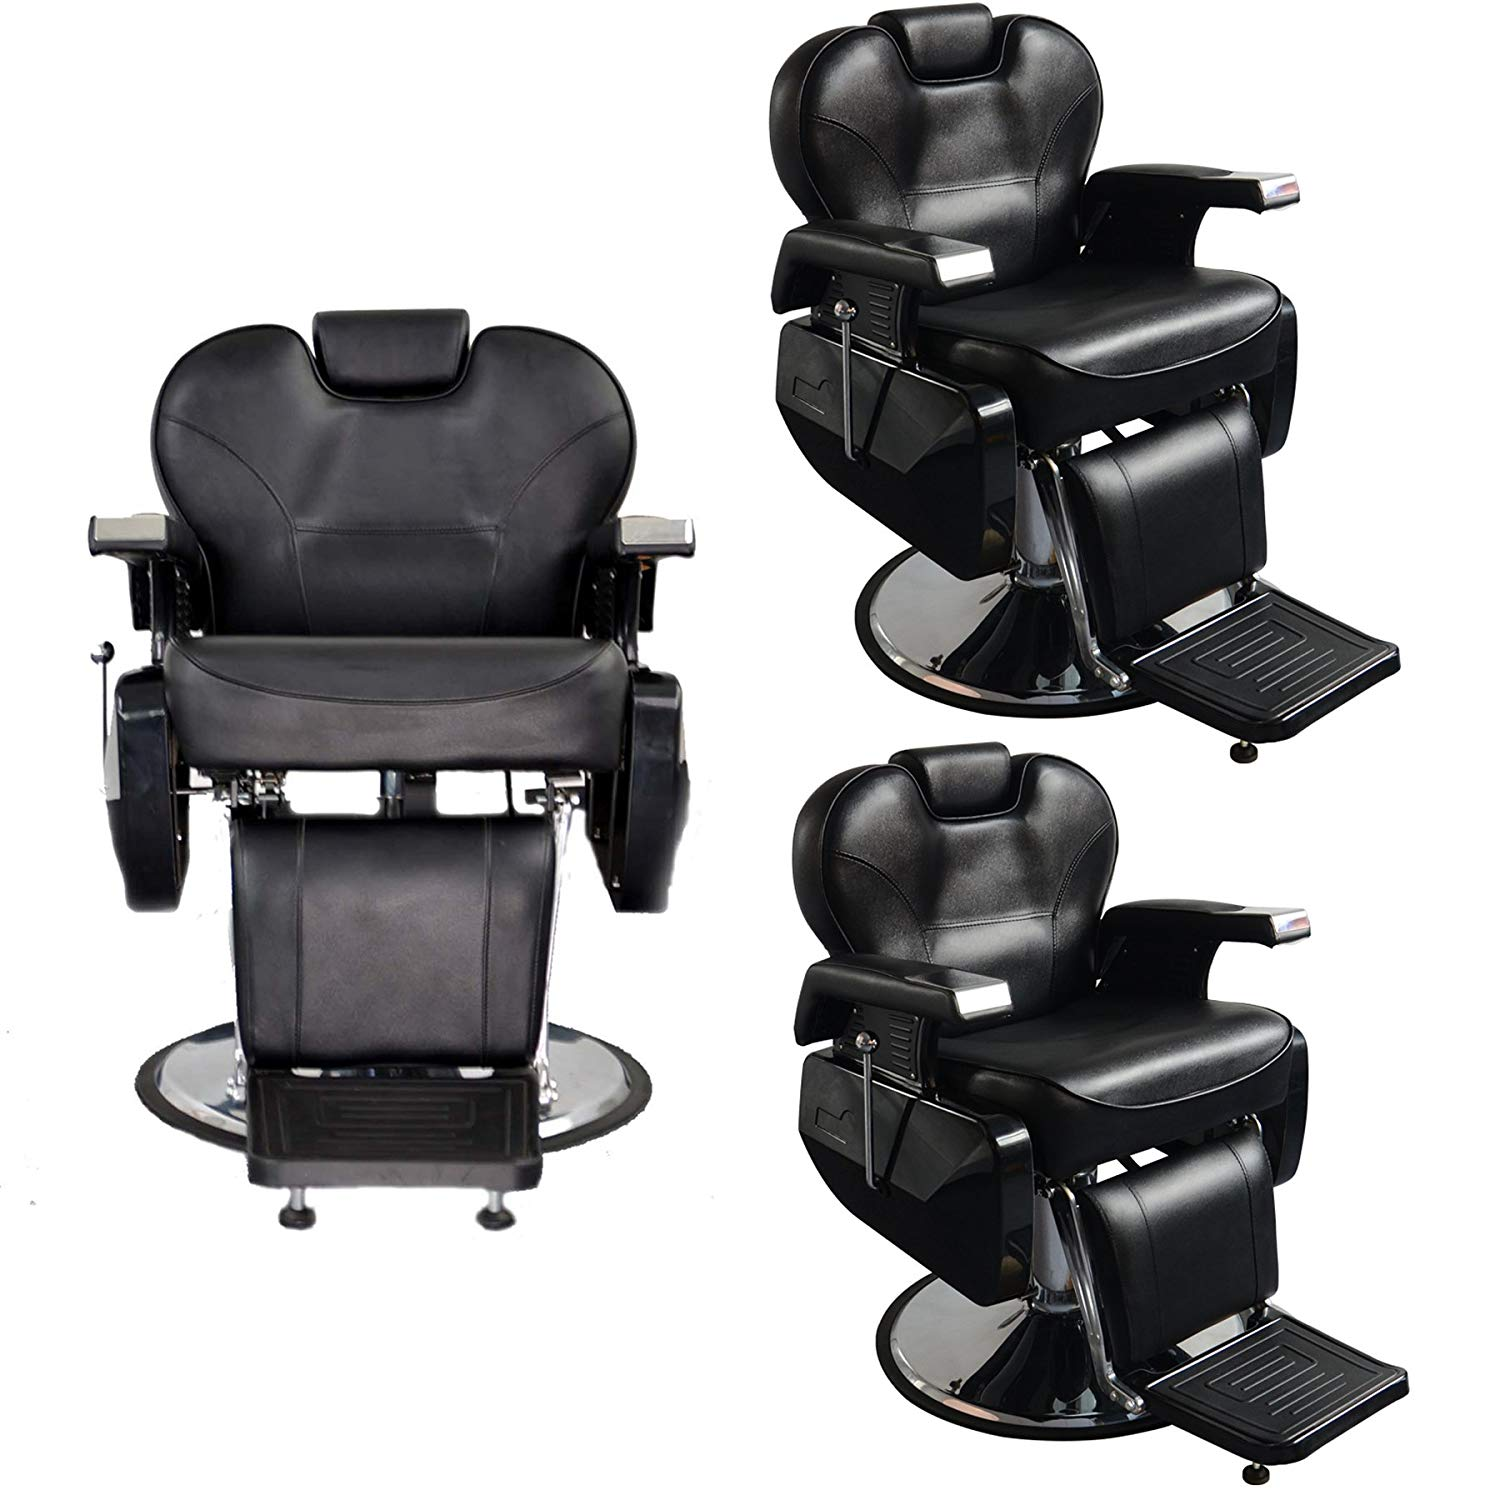 BarberPub Three All Purpose Hydraulic Recline Barber Chairs